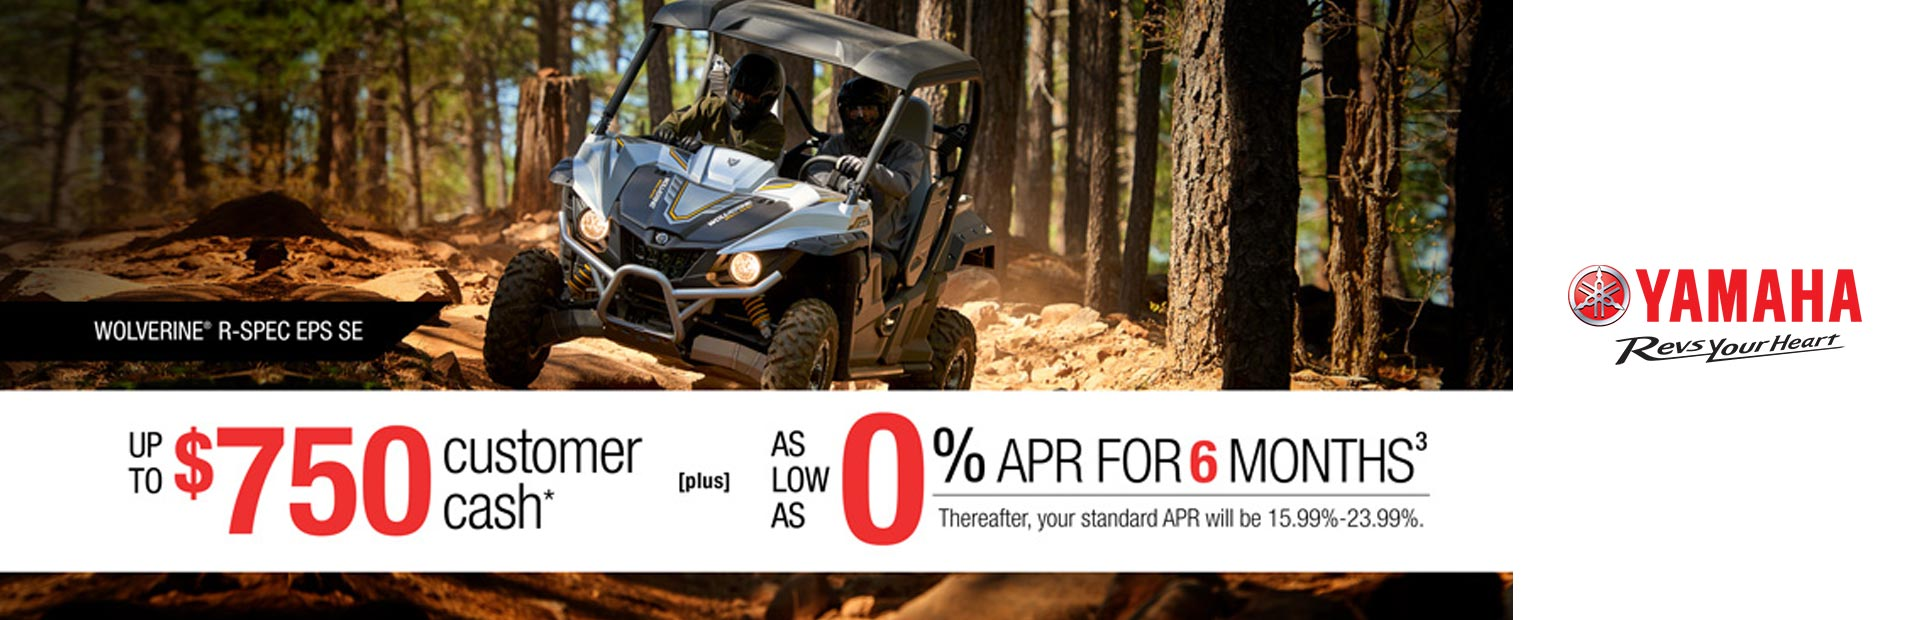 0% APR For 6 Months (SxS)